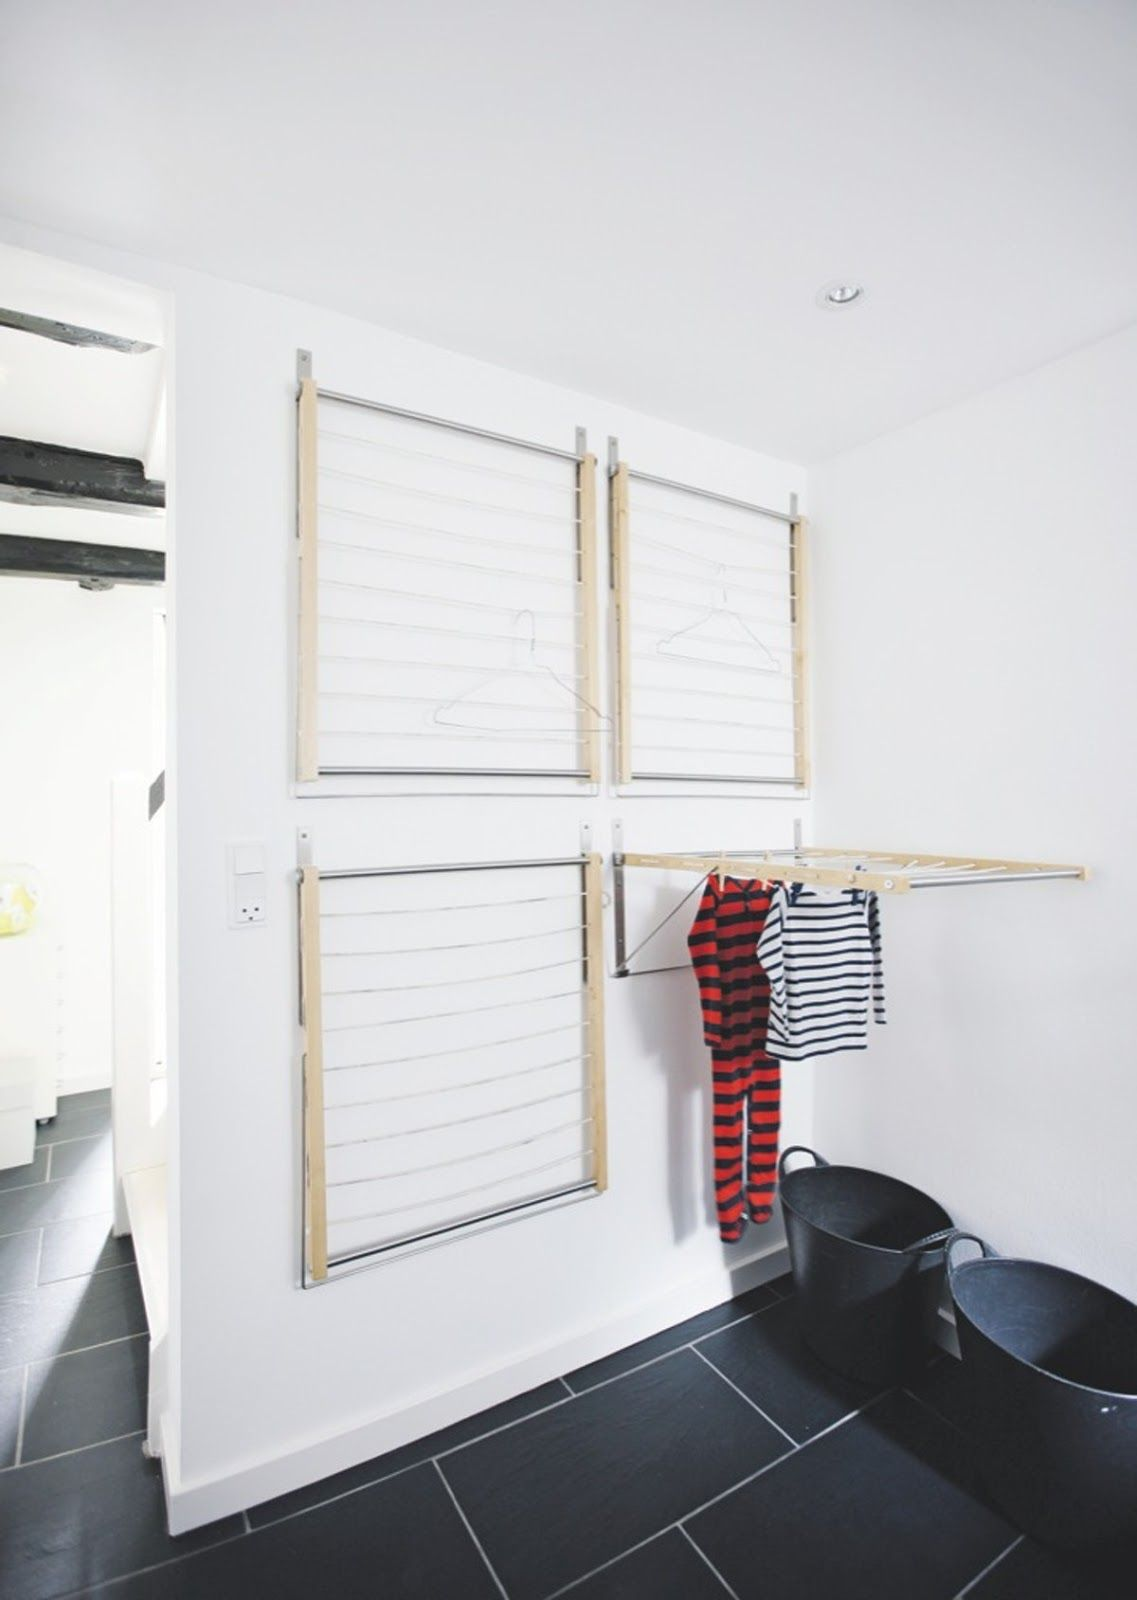 10 Ideas for Tiny Laundry Spaces